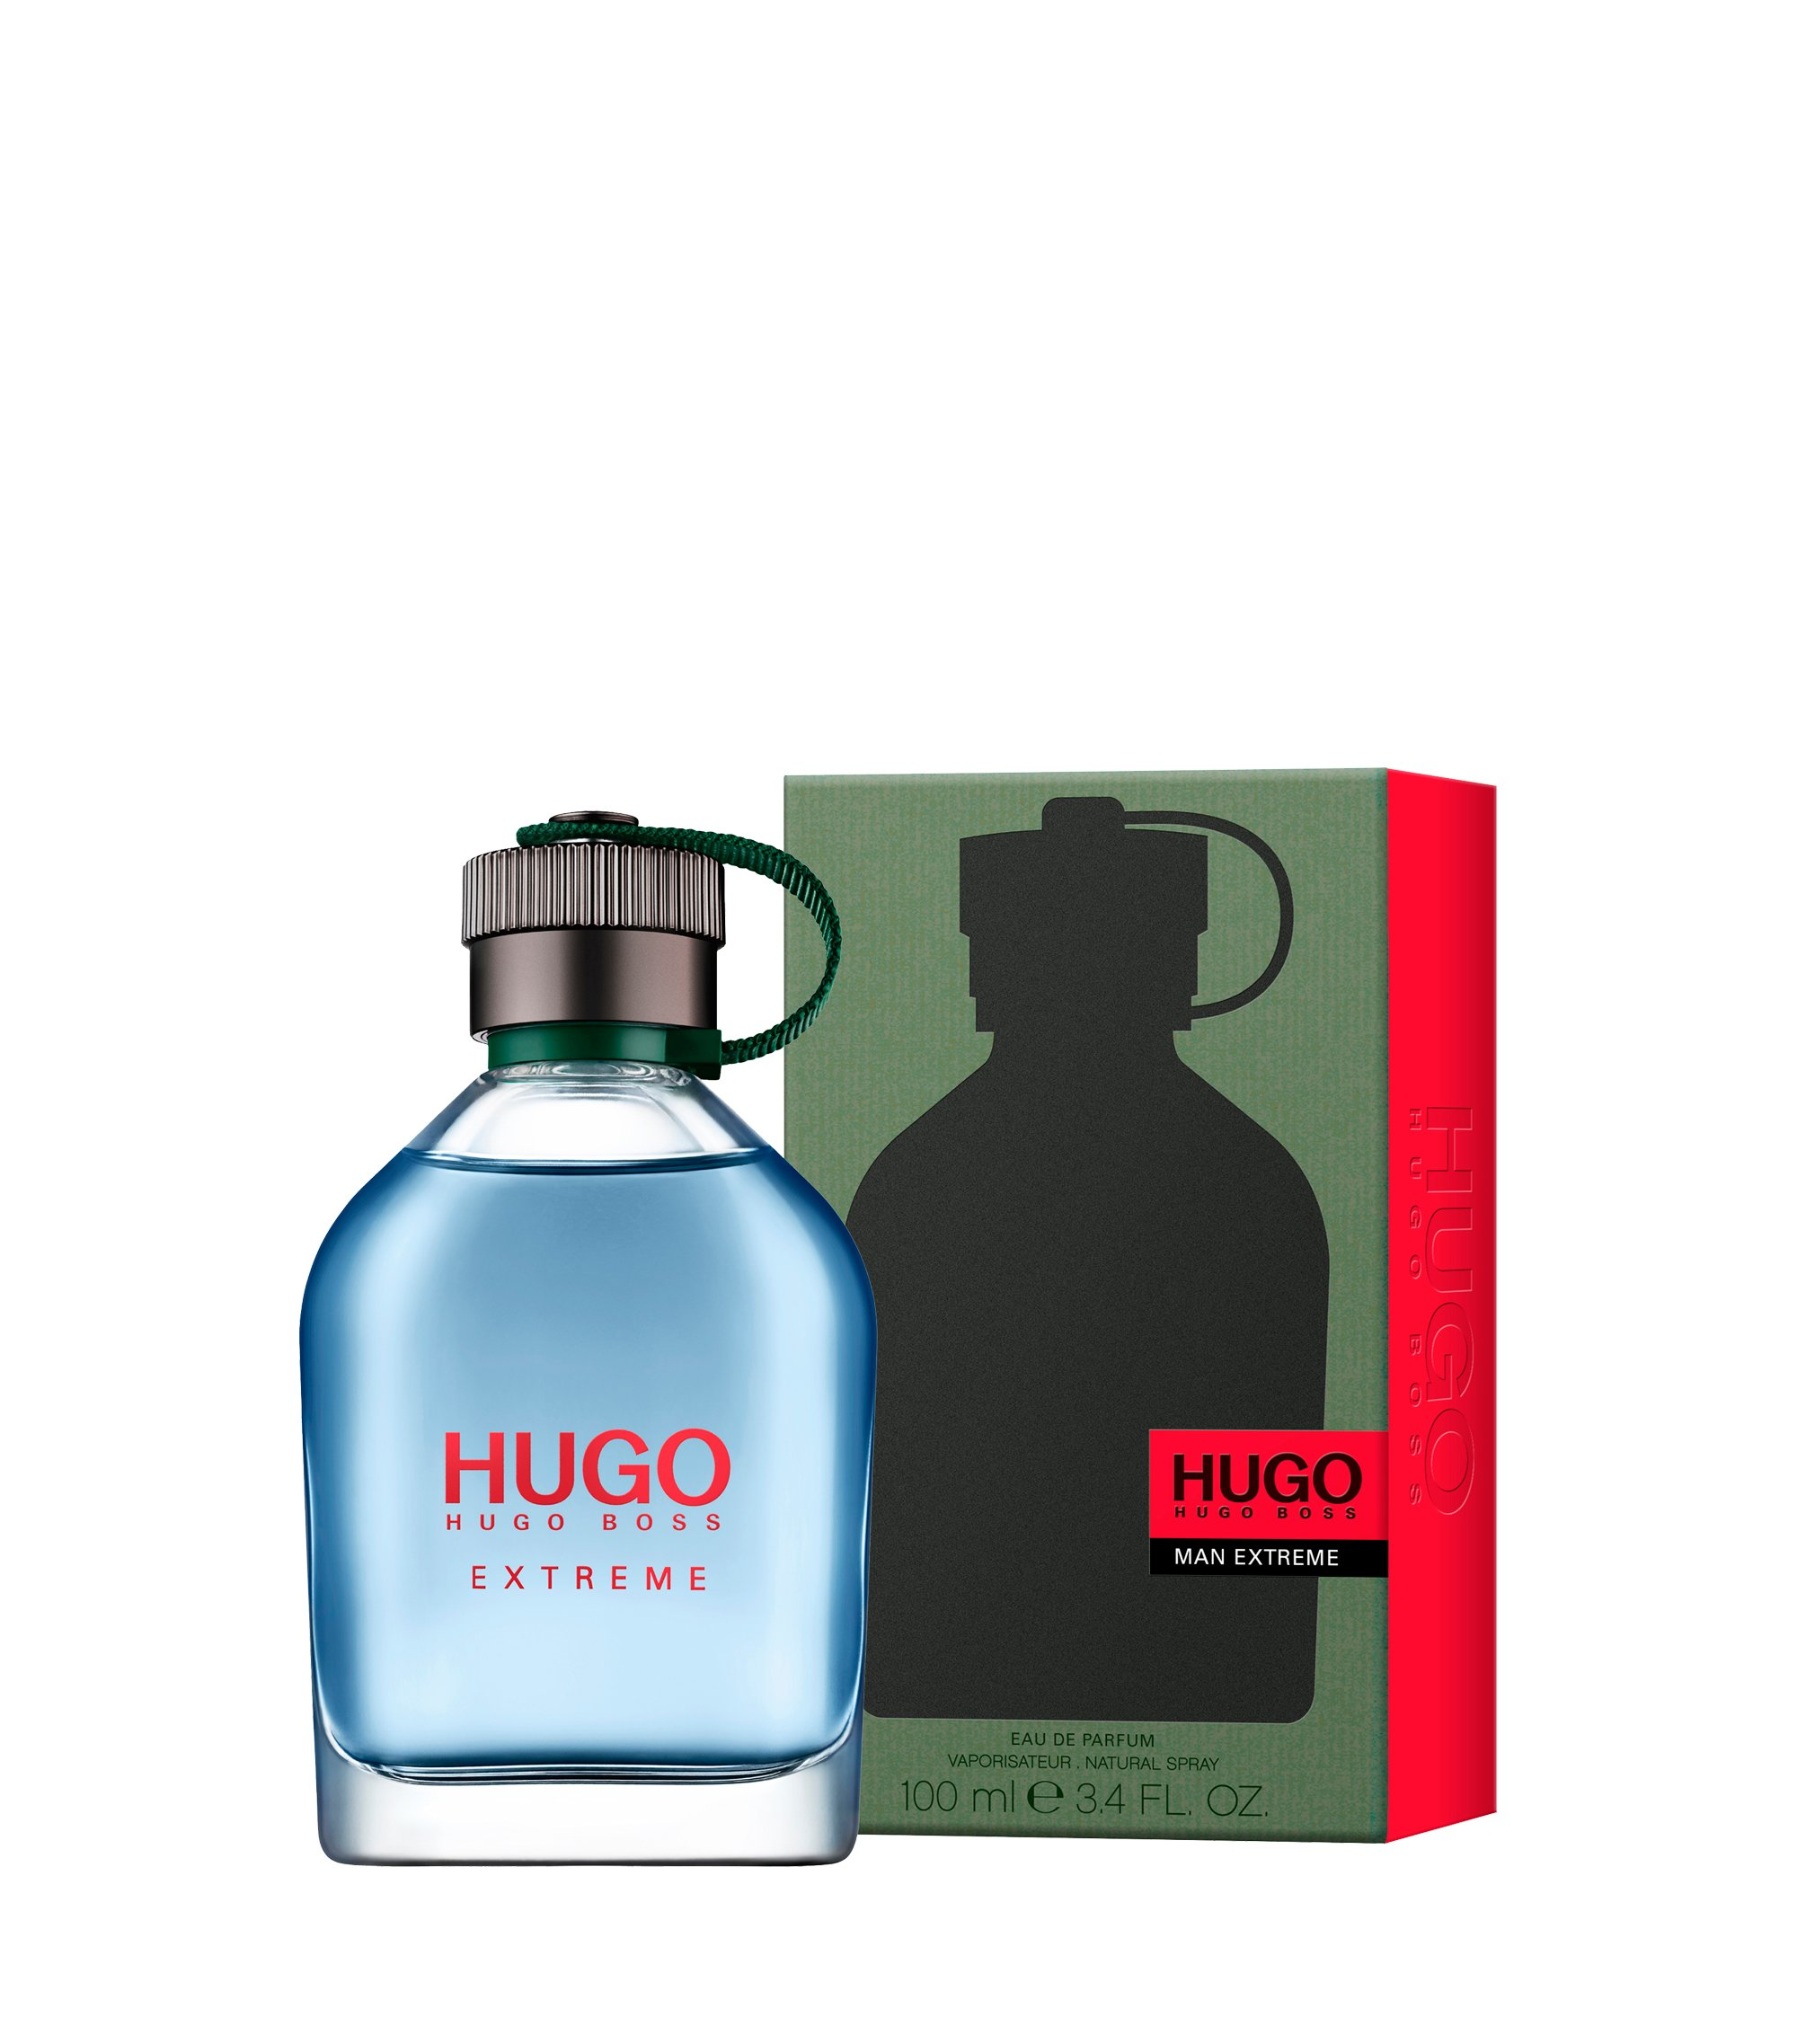 HUGO Man Extreme eau de parfum 100ml, Assorted-Pre-Pack